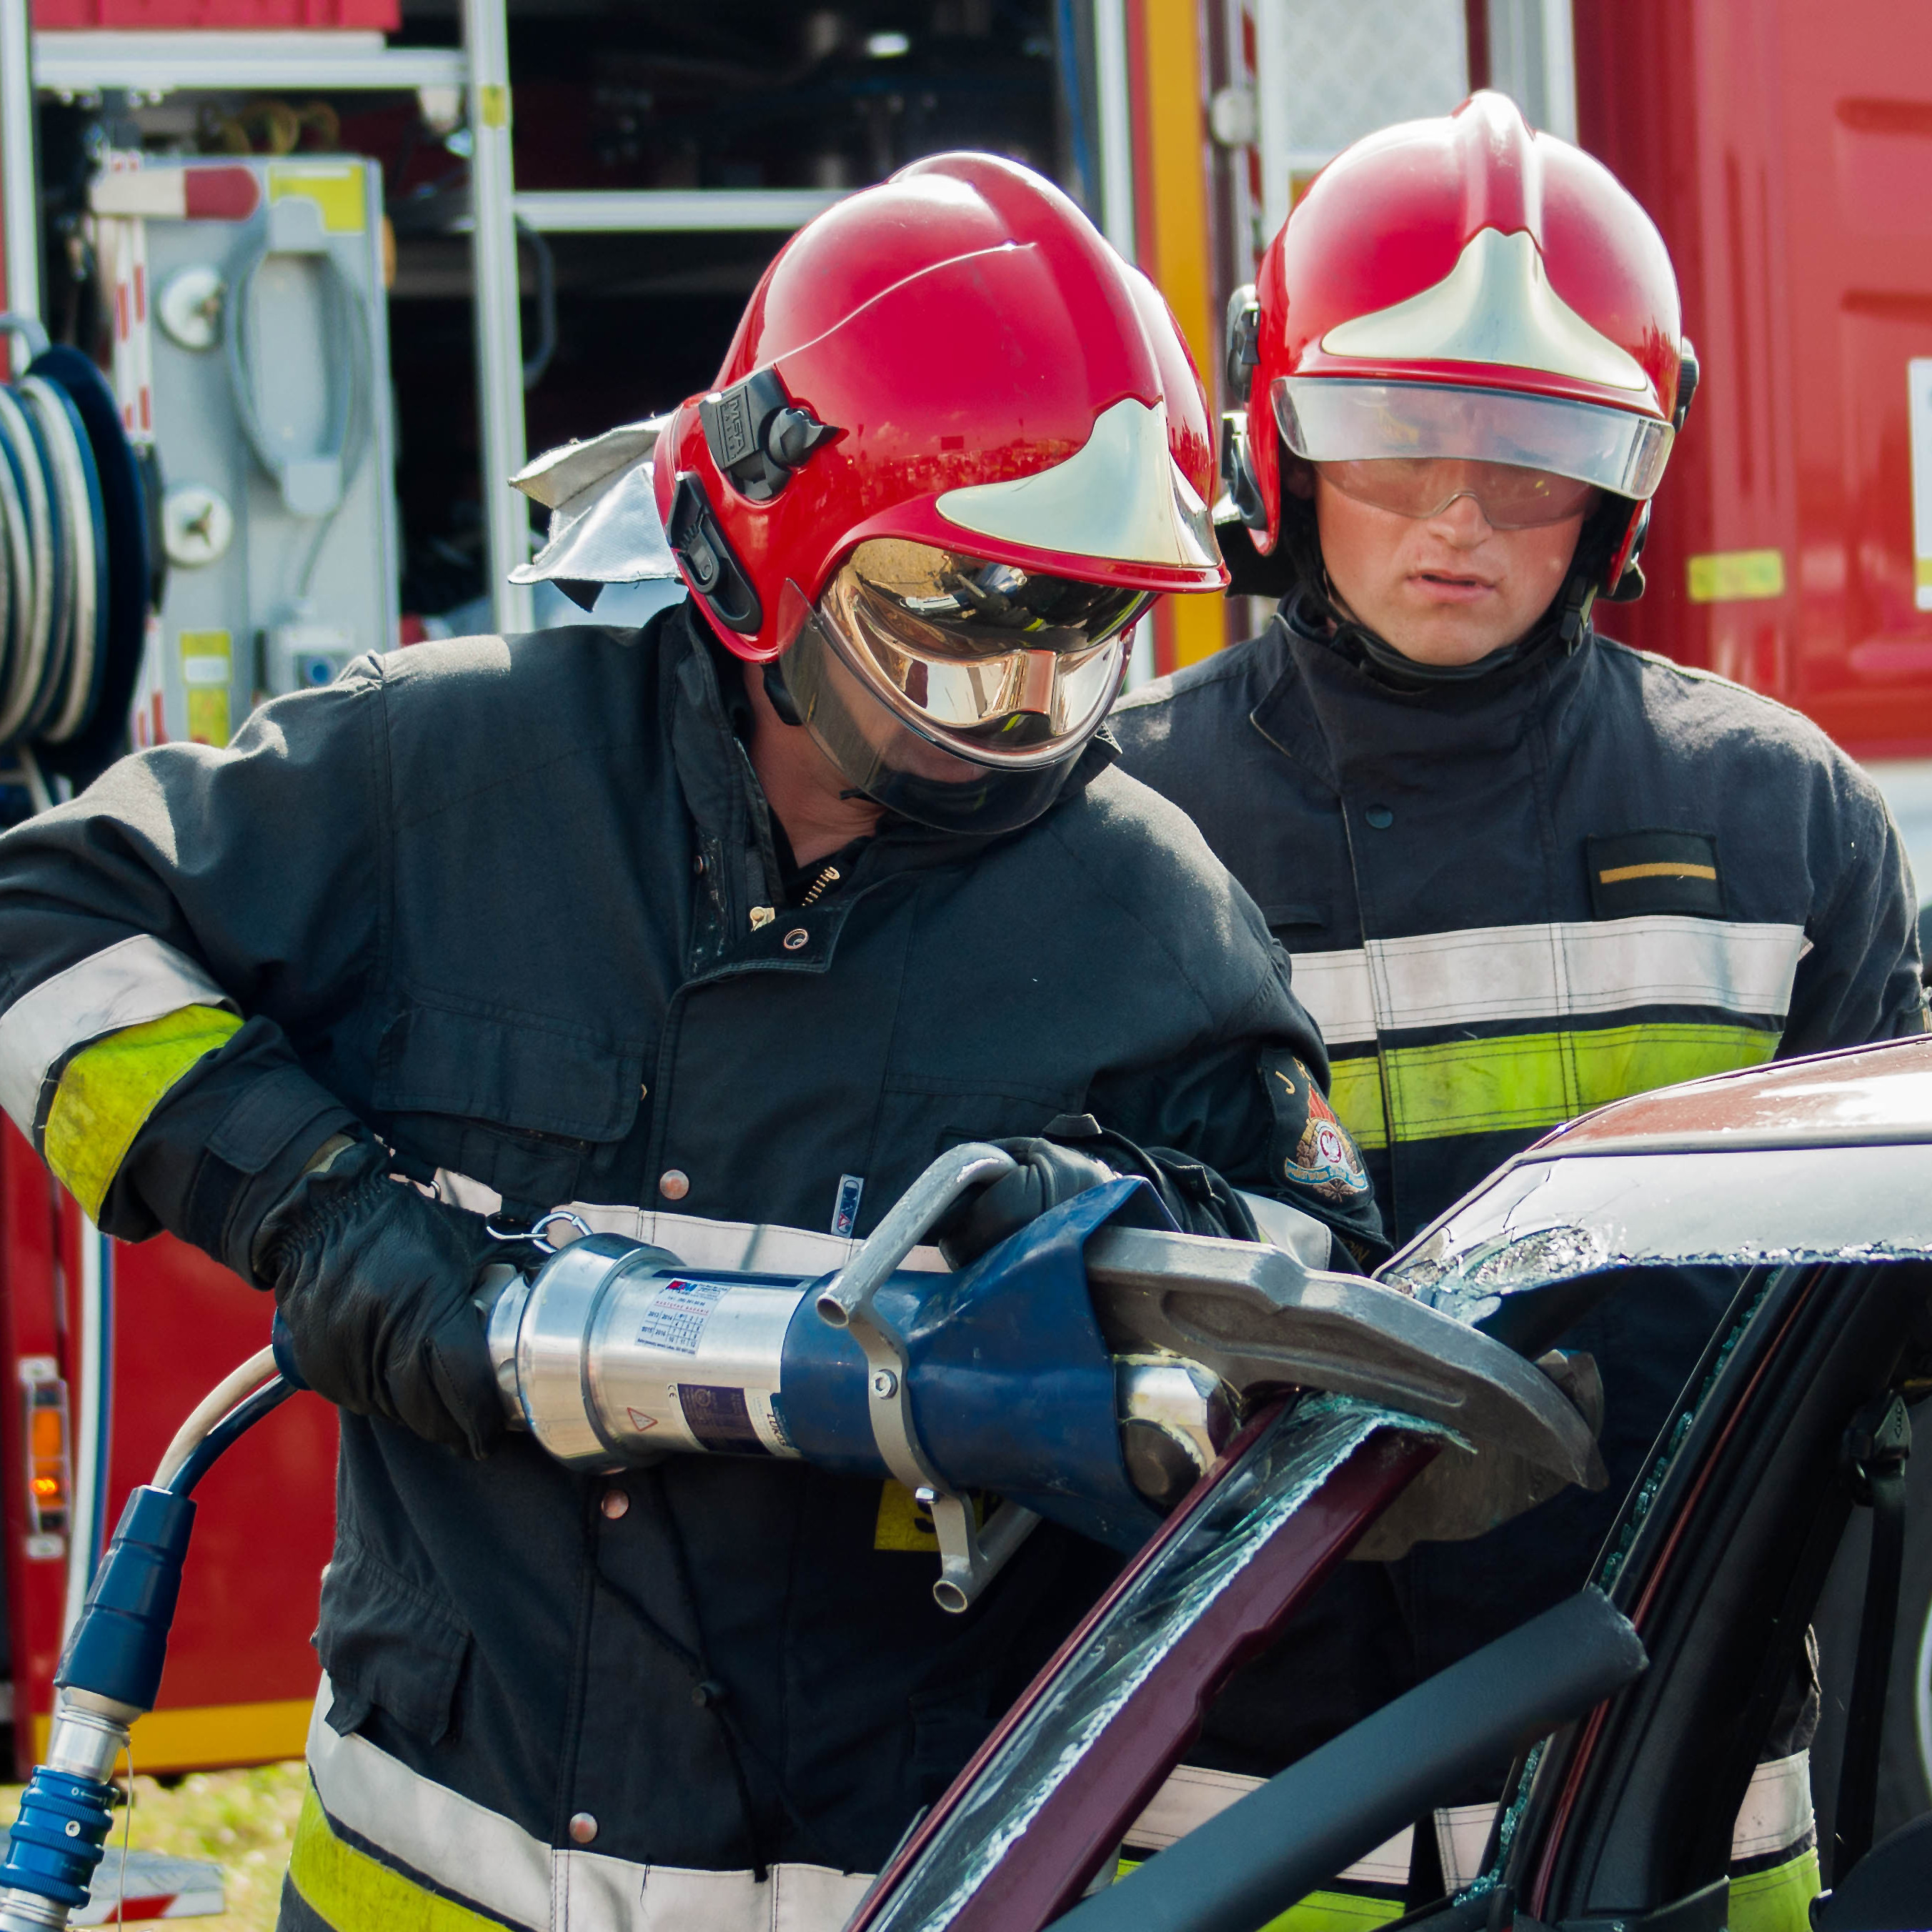 SZCZECIN POLAND - JULY 08 2014: Fire and Rescue Emergency Units at car accident with Power Wedge.